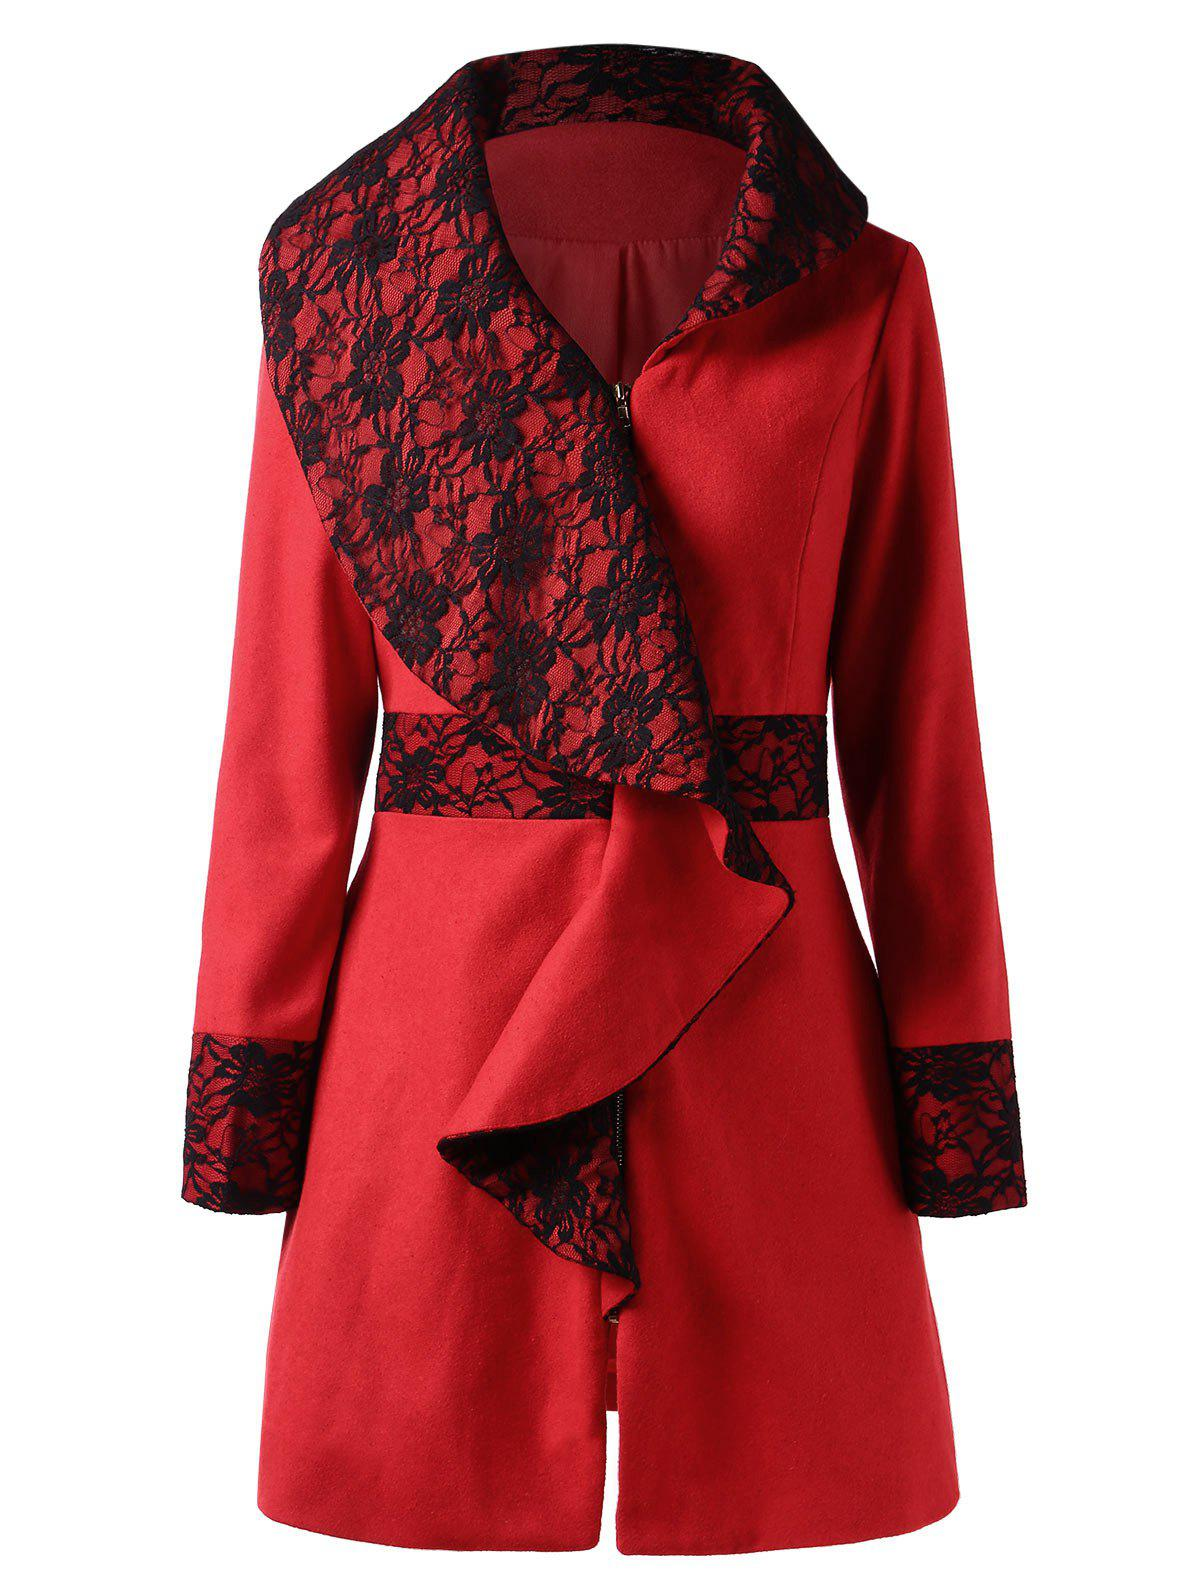 Lace Panel Cascading Ruffled Wool Coat - RED 2XL